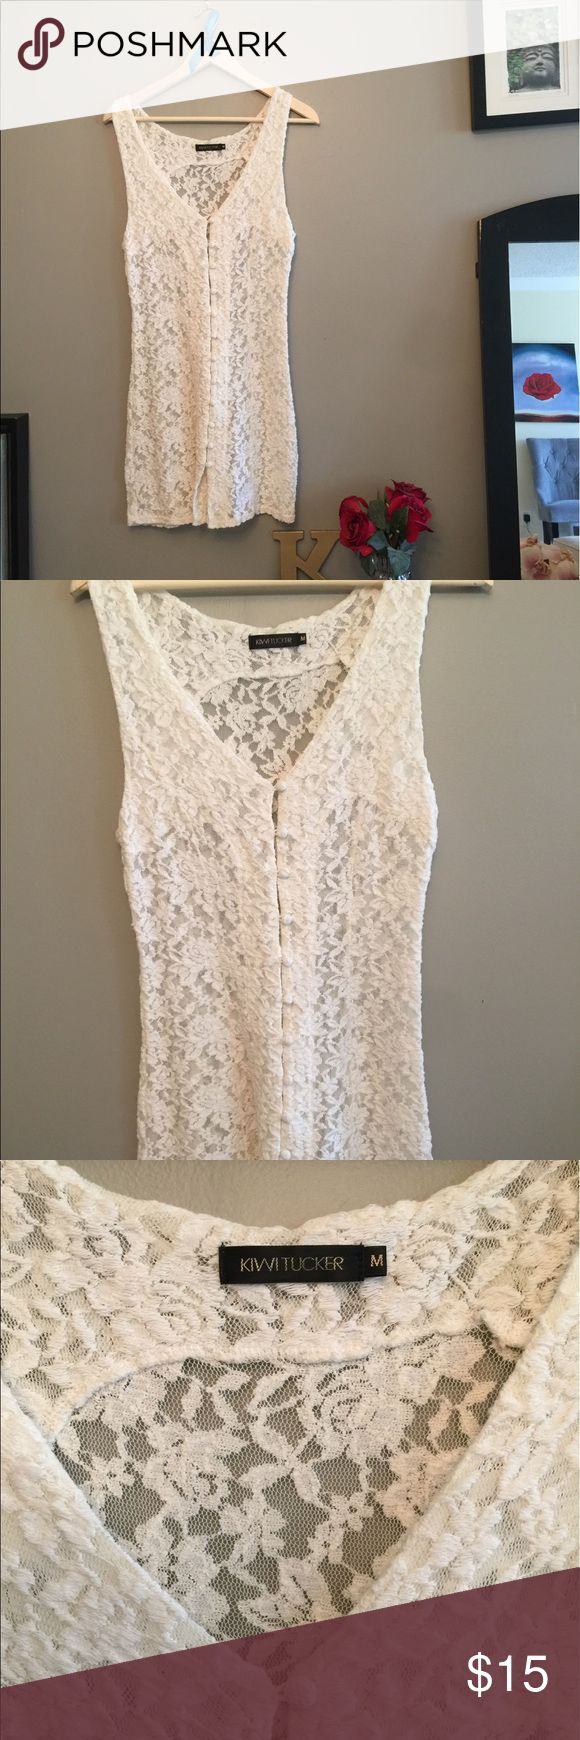 Kiwi Tucker white lace dress This is a reposh, unfortunately it was too big on me in the bust area. Would be great for someone with big boobies! It's completely sheer btw! Use as a swimsuit cover up? Kiwi Tucker is a great Australian brand. One of the buttons is unraveling a bit as pictured. Bundle and save! Kiwi Tucker Dresses Mini